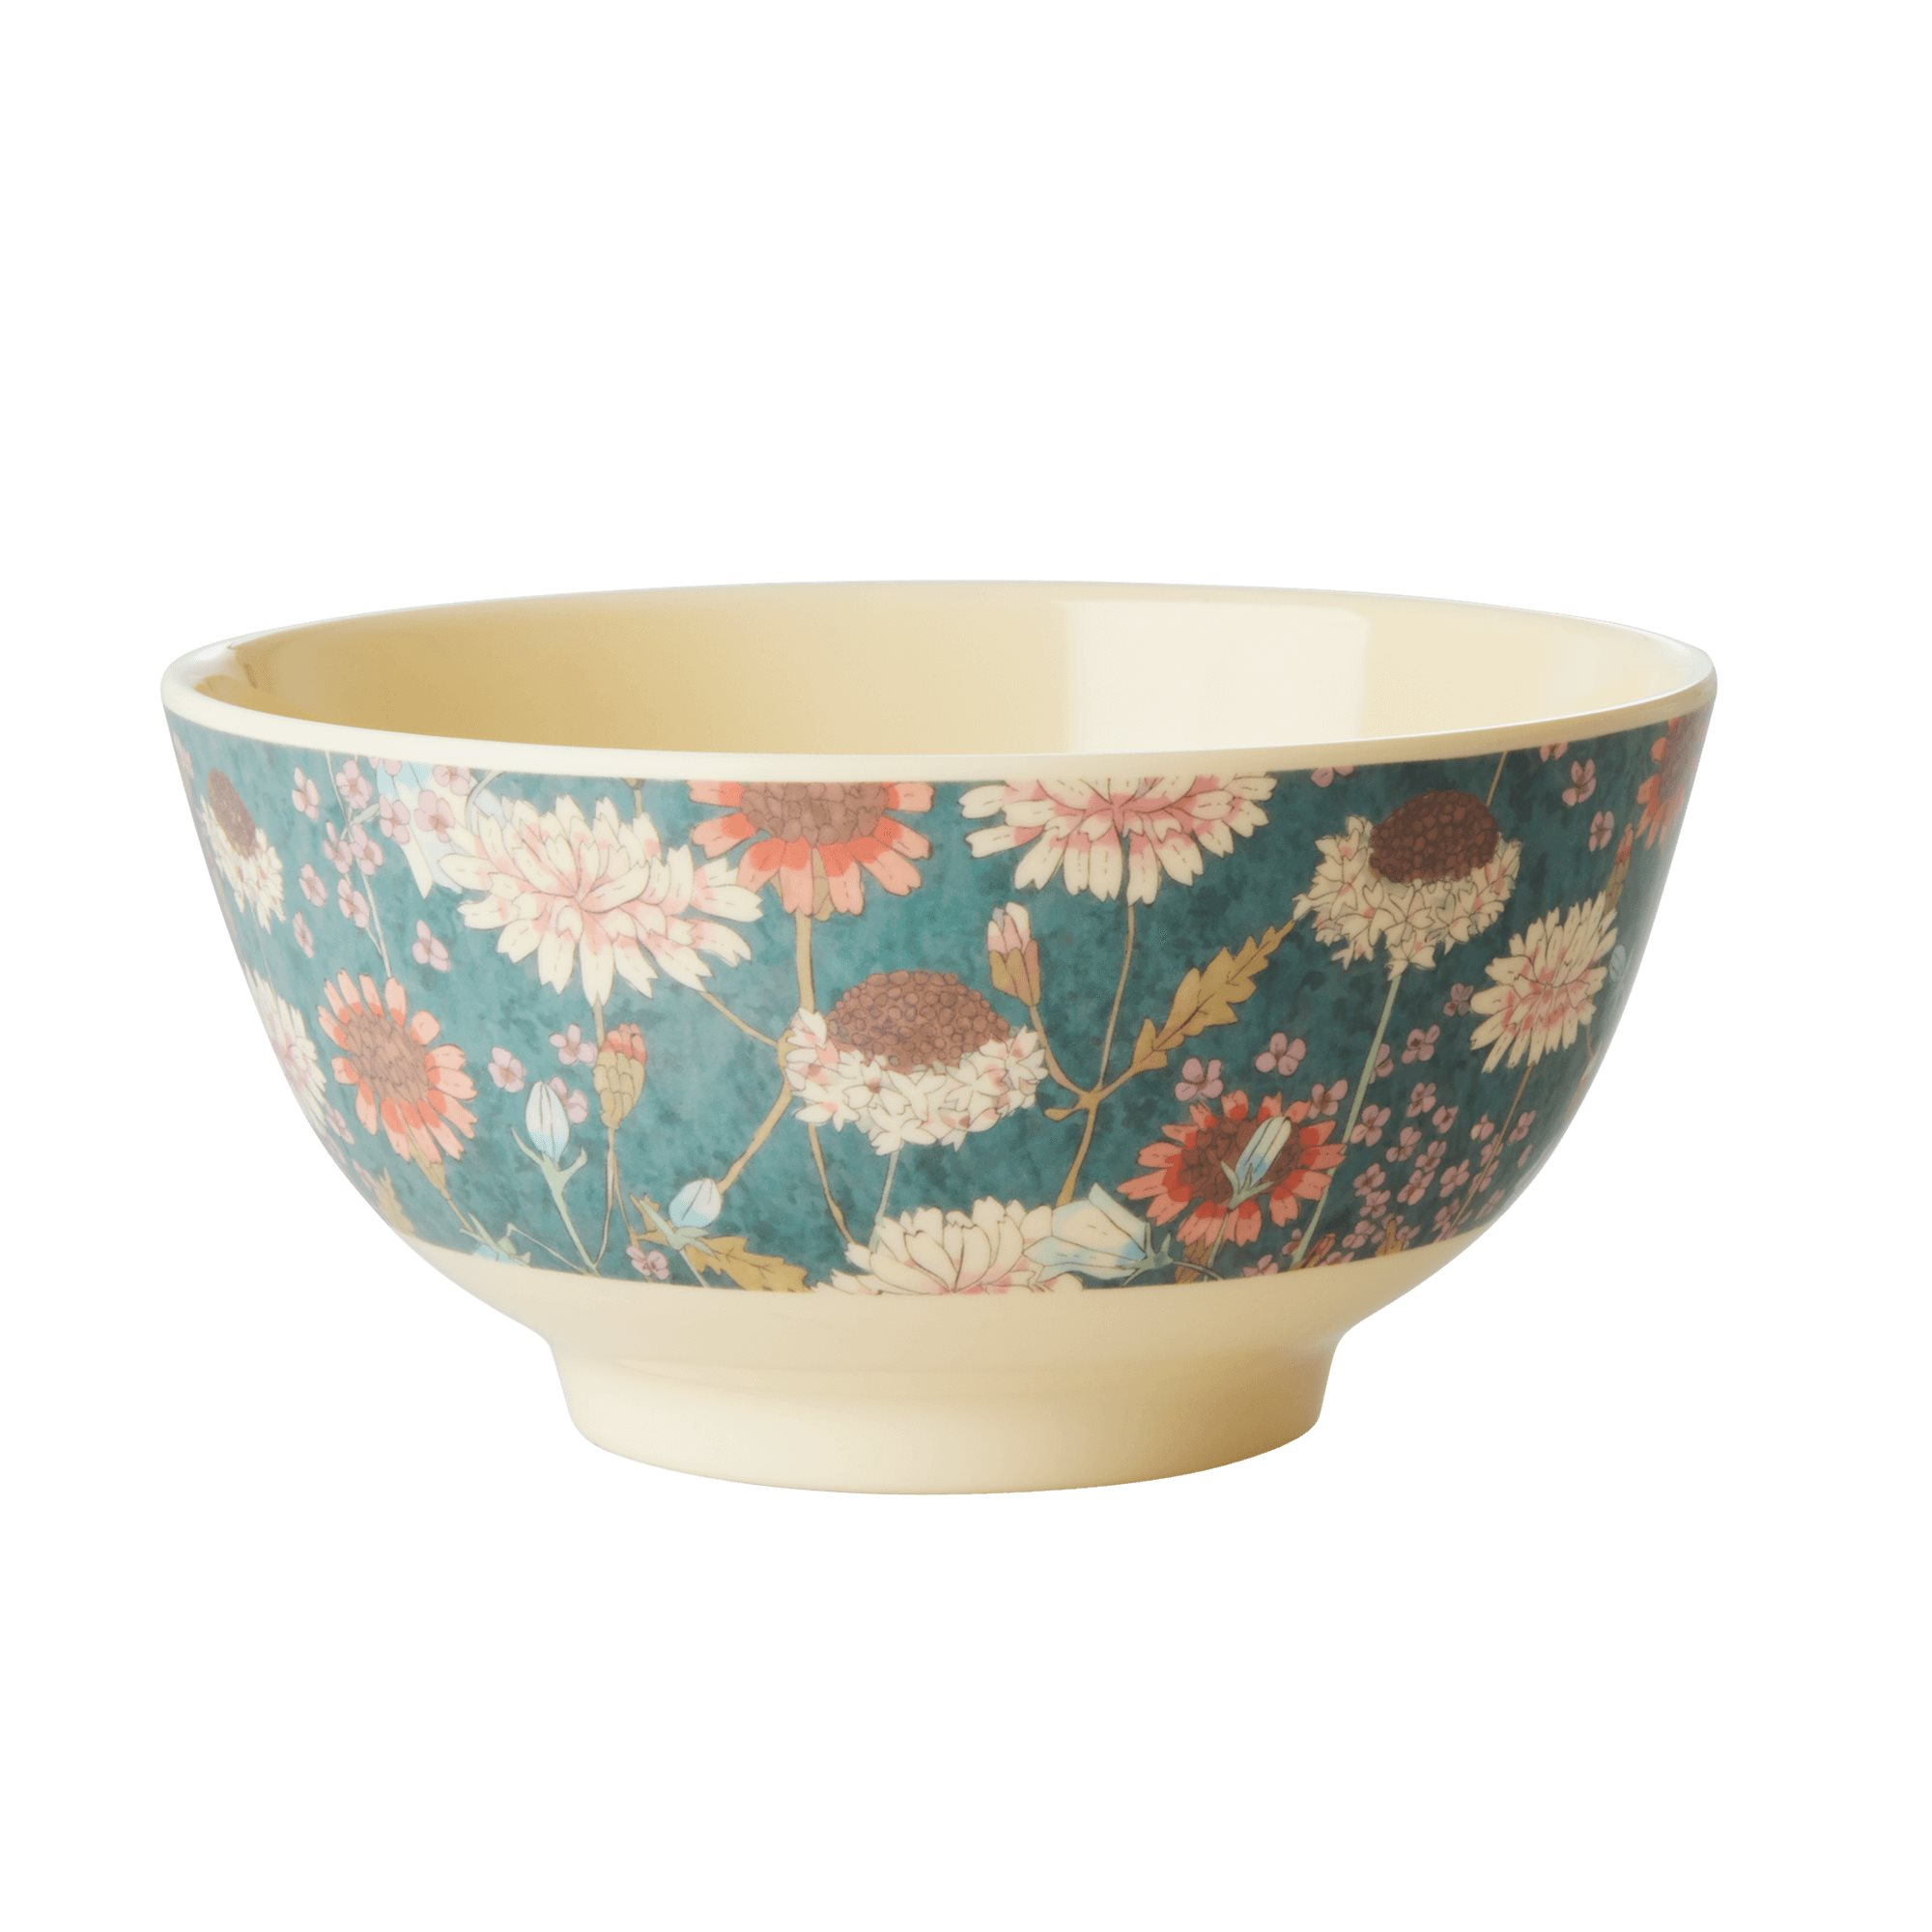 Medium Melamine Bowl - Fall Flower Print - rice